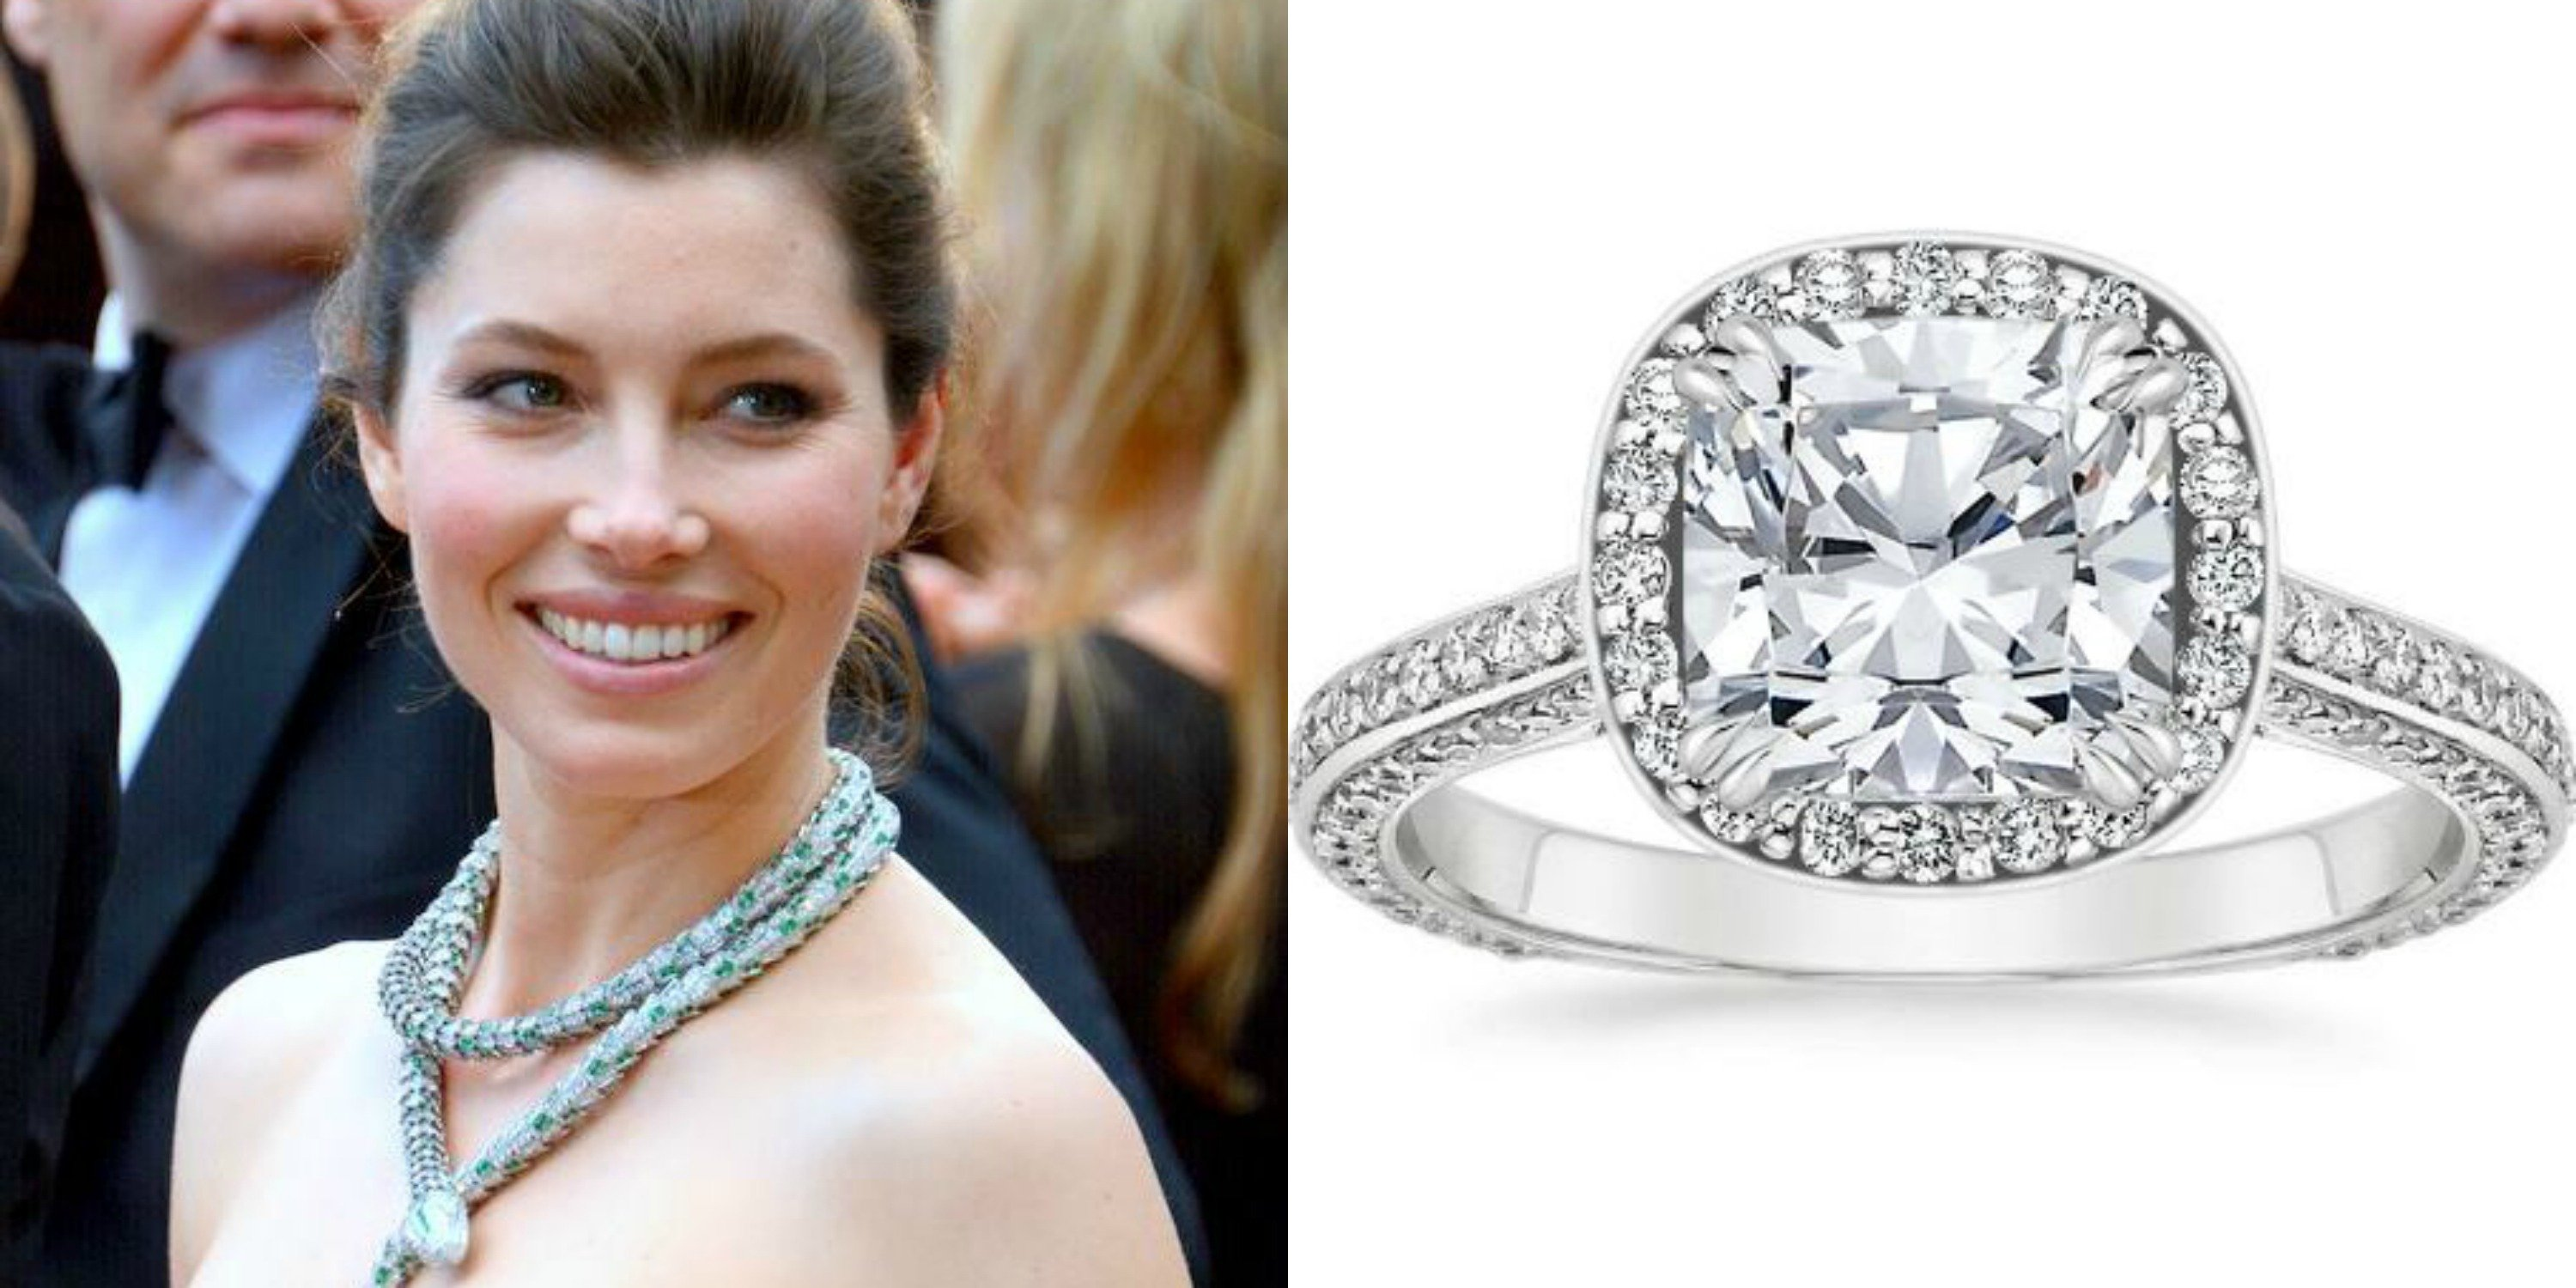 fitzgerald celebrity rings engagement zelda stunning wedding shining ring ideas celeb